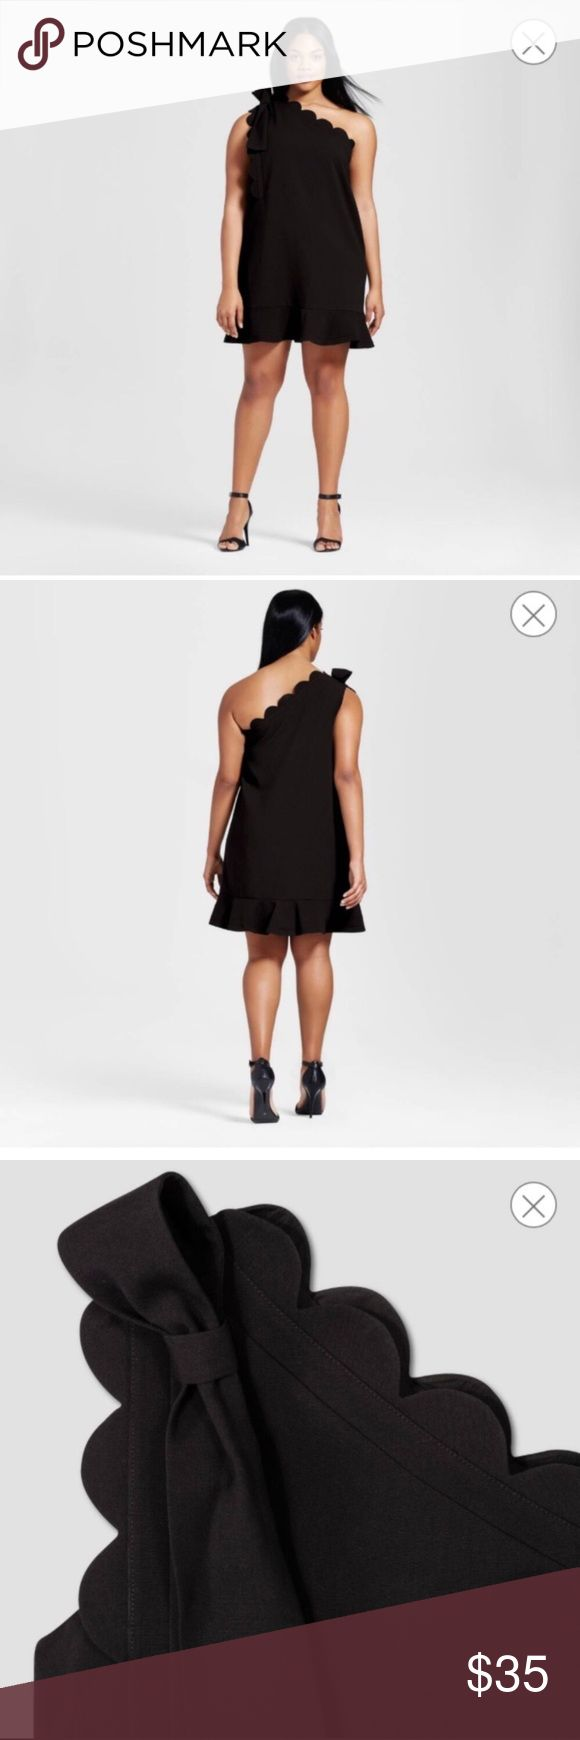 NWT Victoria Beckham Black One Shoulder Dress sz M NWT 🌹 Victoria Beckham for Target Circus Scallops Collection Black One Sleeve Dress. Front bow & scallop detailing. Fully lined. Side zipper. Adorable for summer! Size Medium. Please refer to the size chart pictured. Materials: Polyester, Rayon & Spandex. 🖤 Bundle & Save with my other Listings! 🖤 Victoria Beckham Dresses Midi